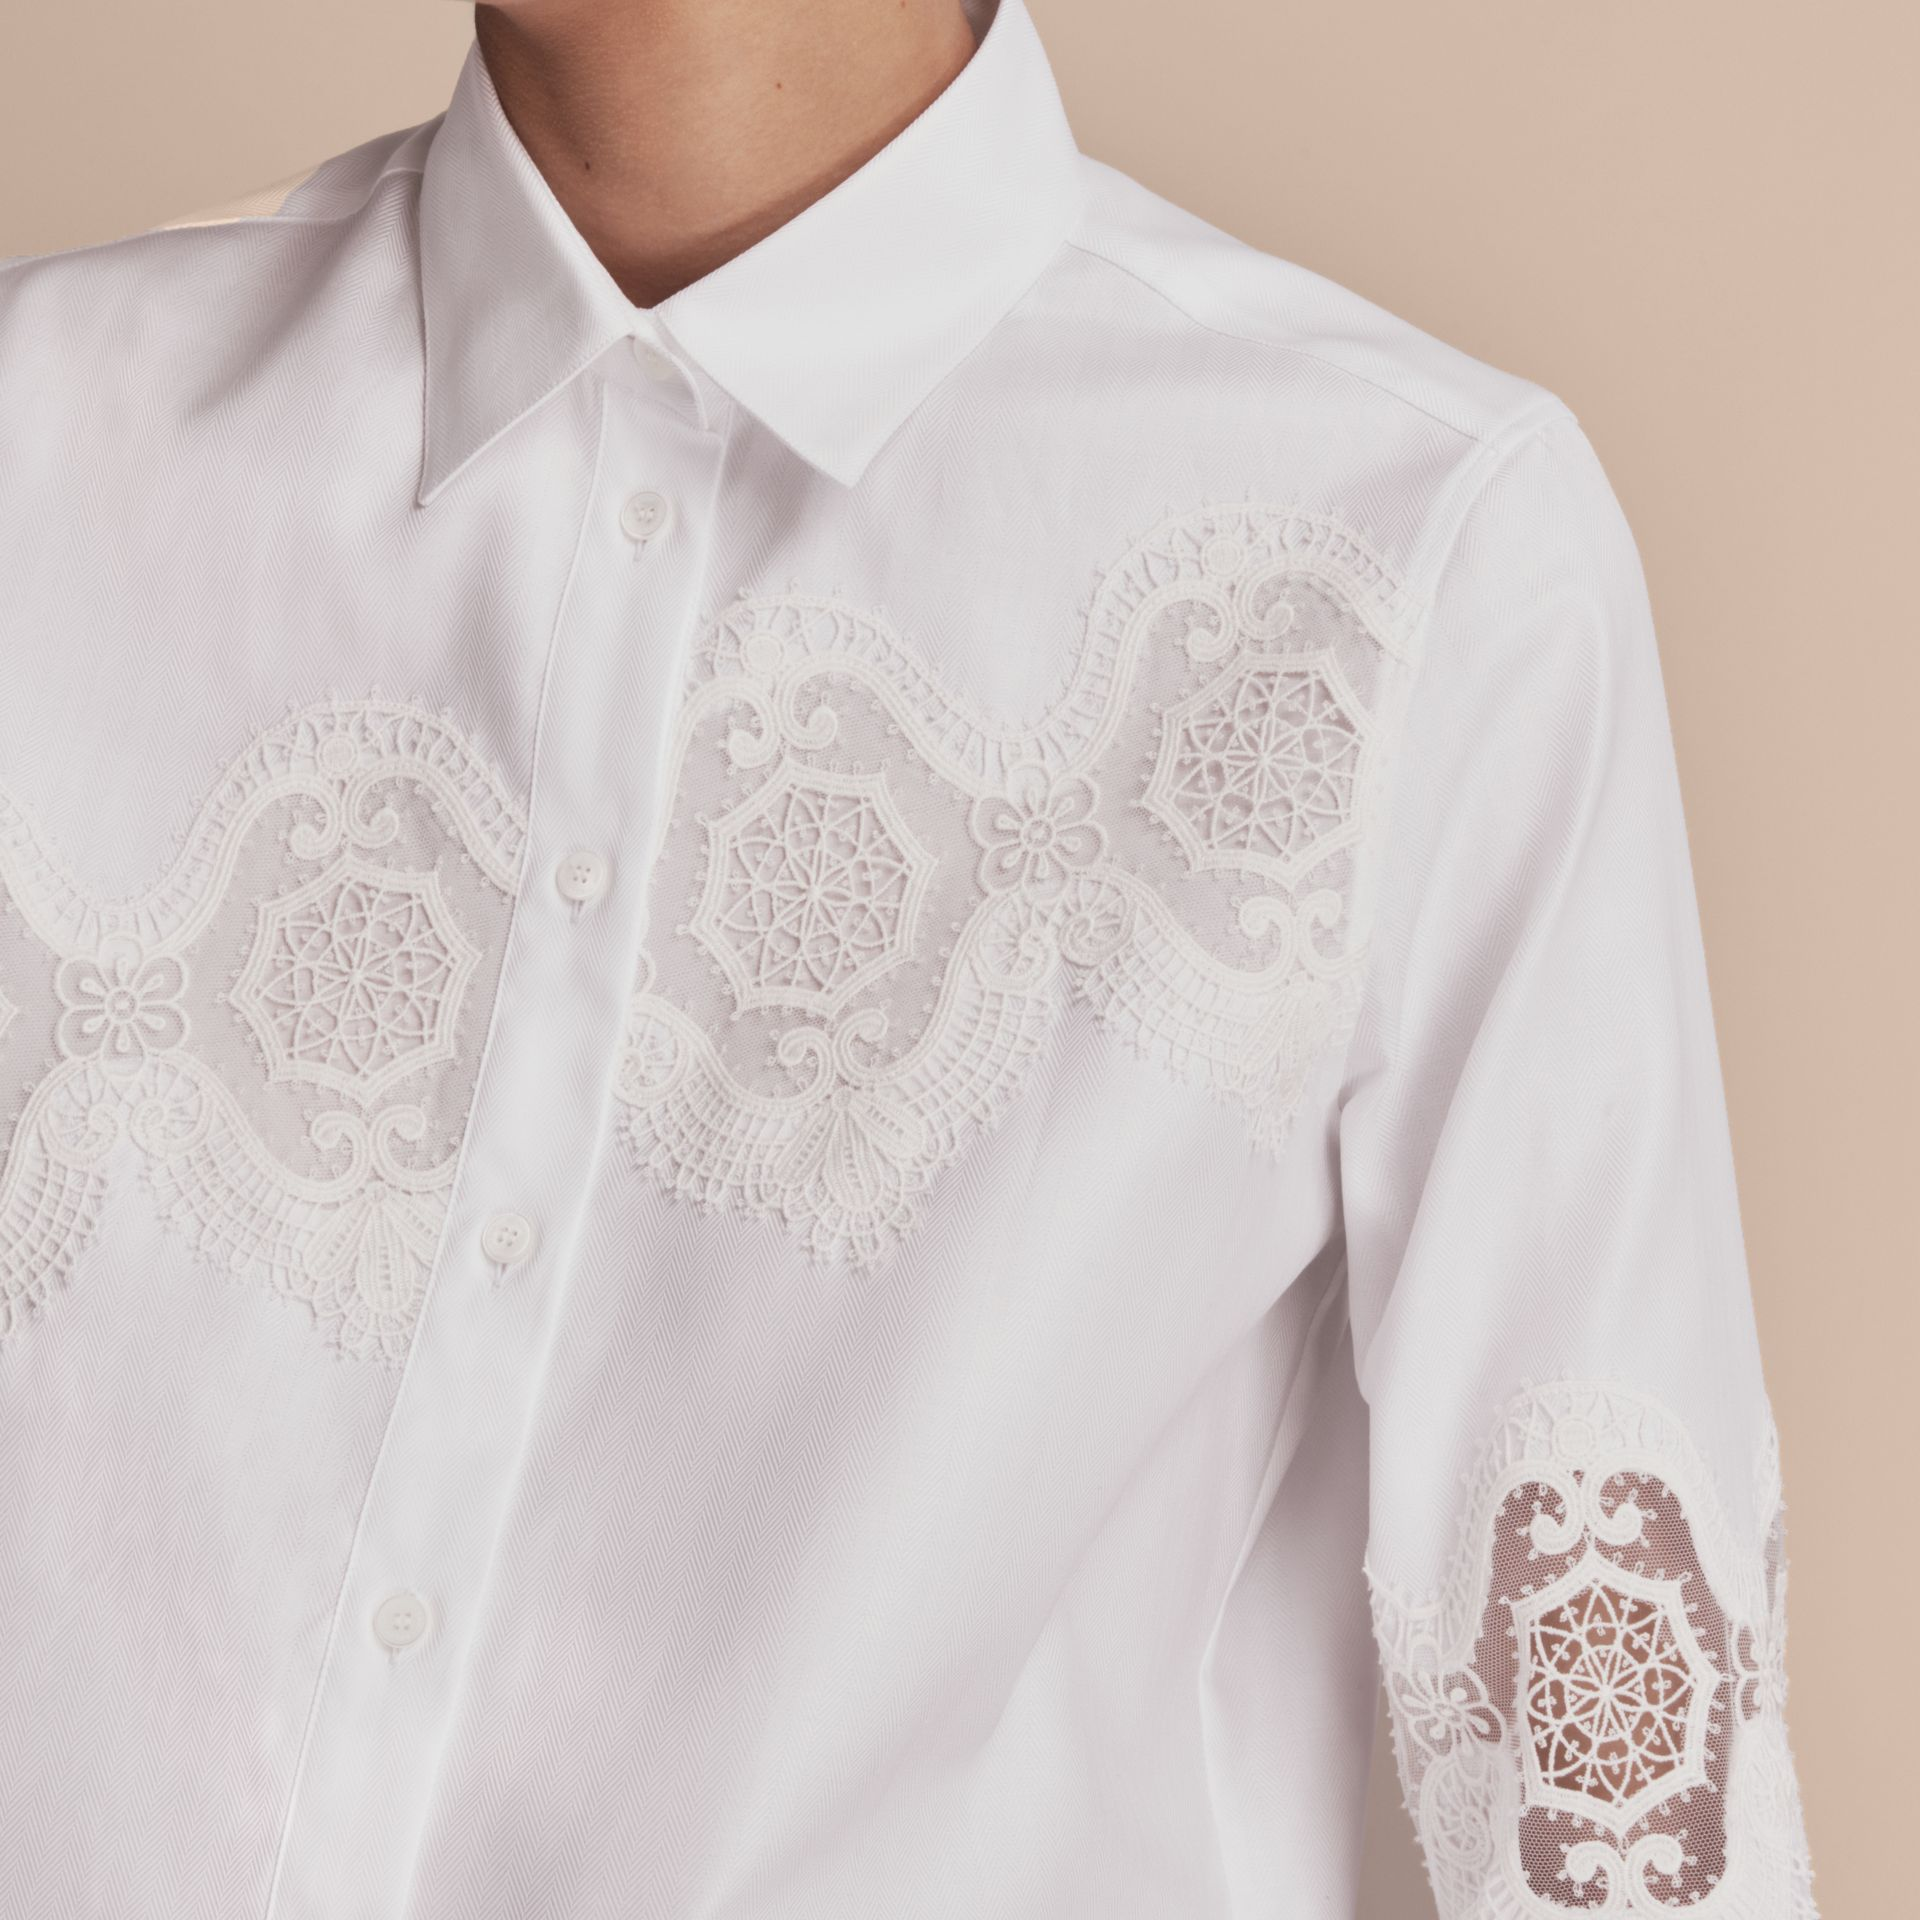 Lace Cutwork Herringbone Cotton Shirt in White - Women | Burberry - gallery image 4